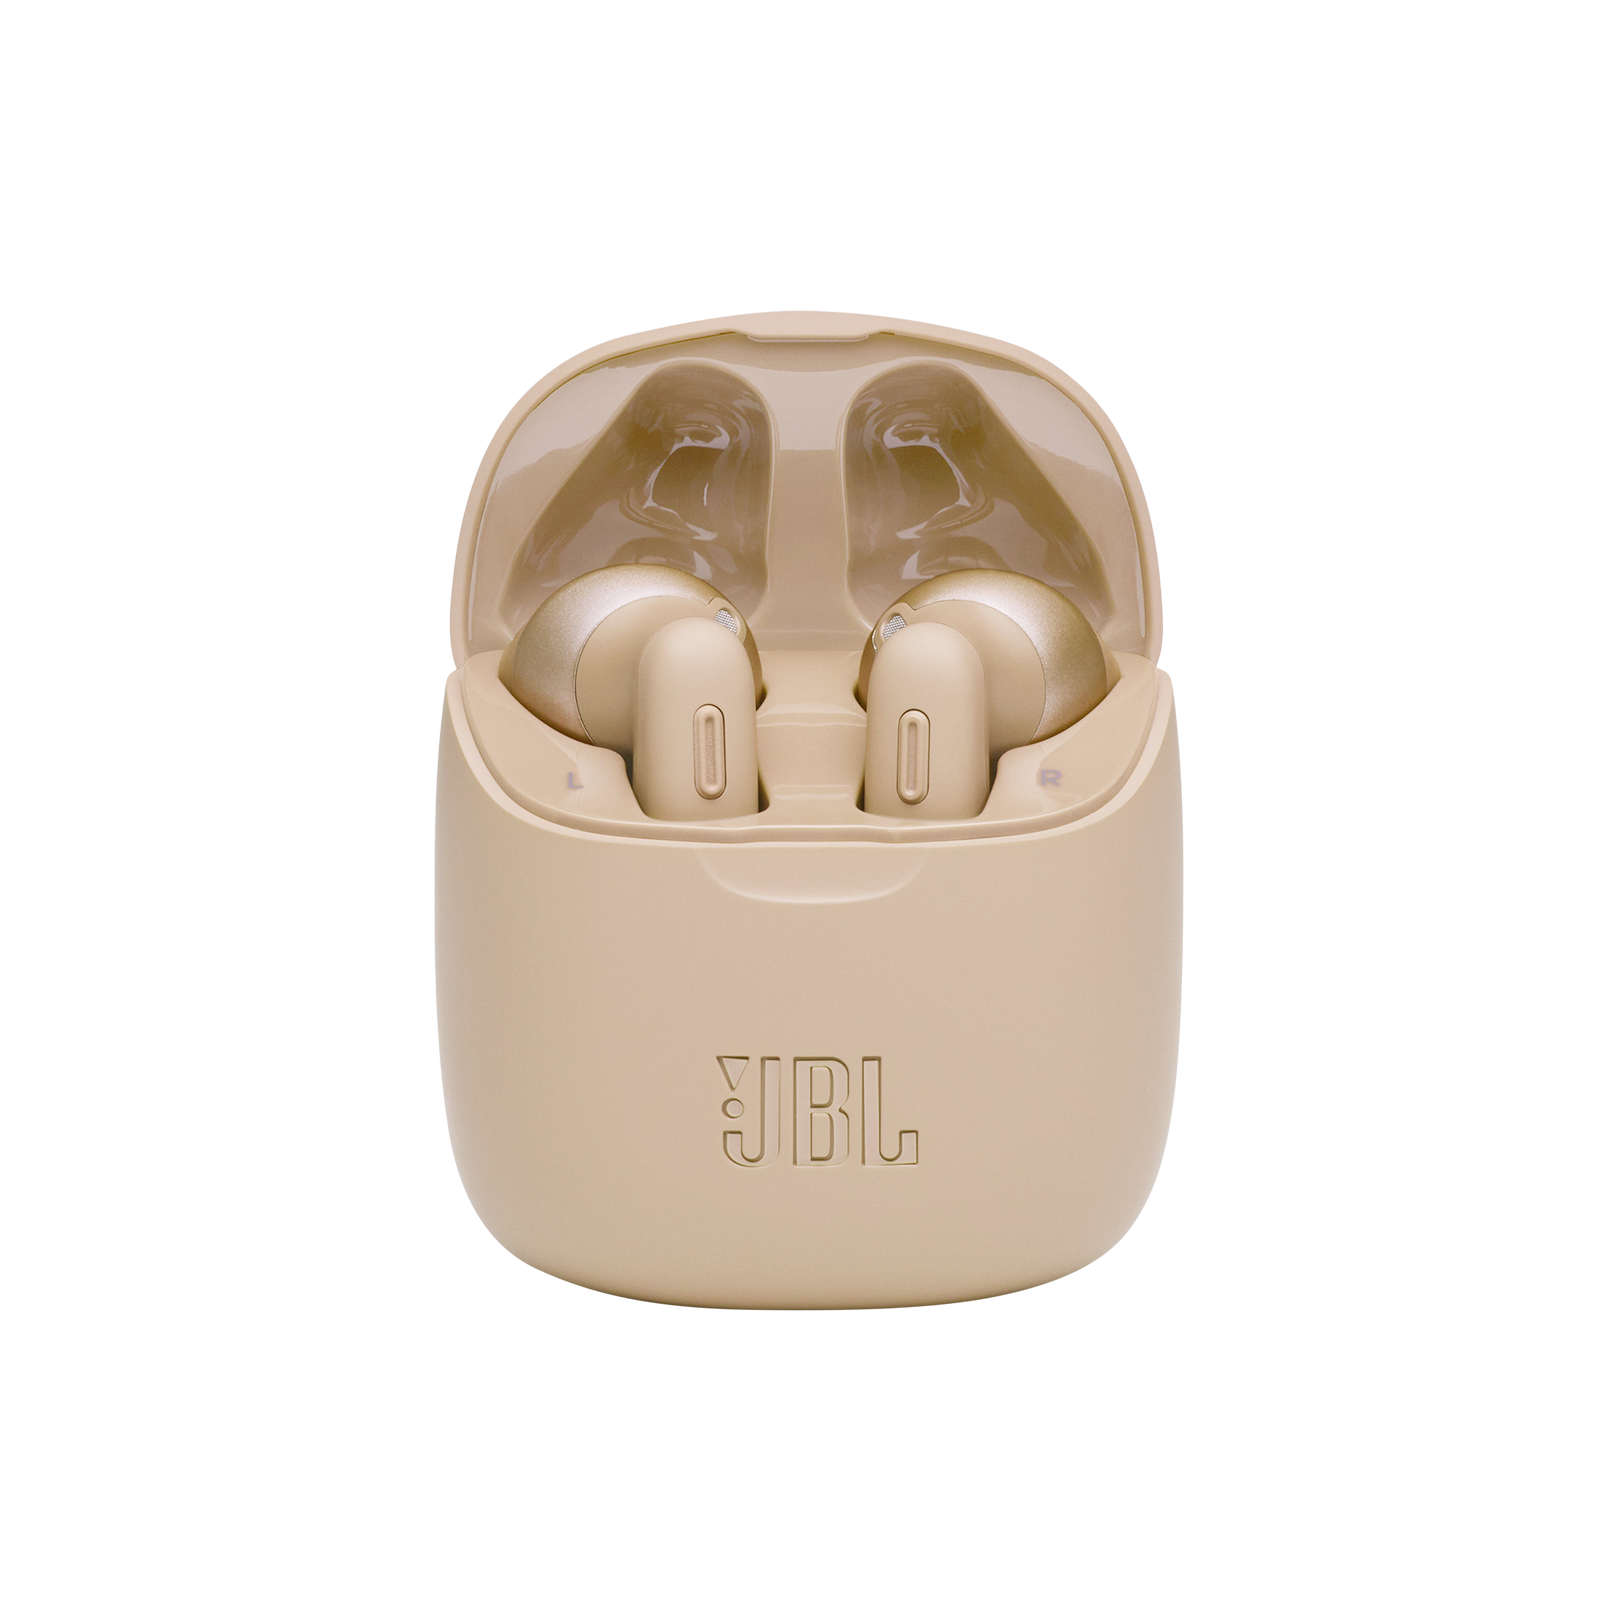 JBL Tune 225TWS - Gold - True wireless earbud headphones - Detailshot 4